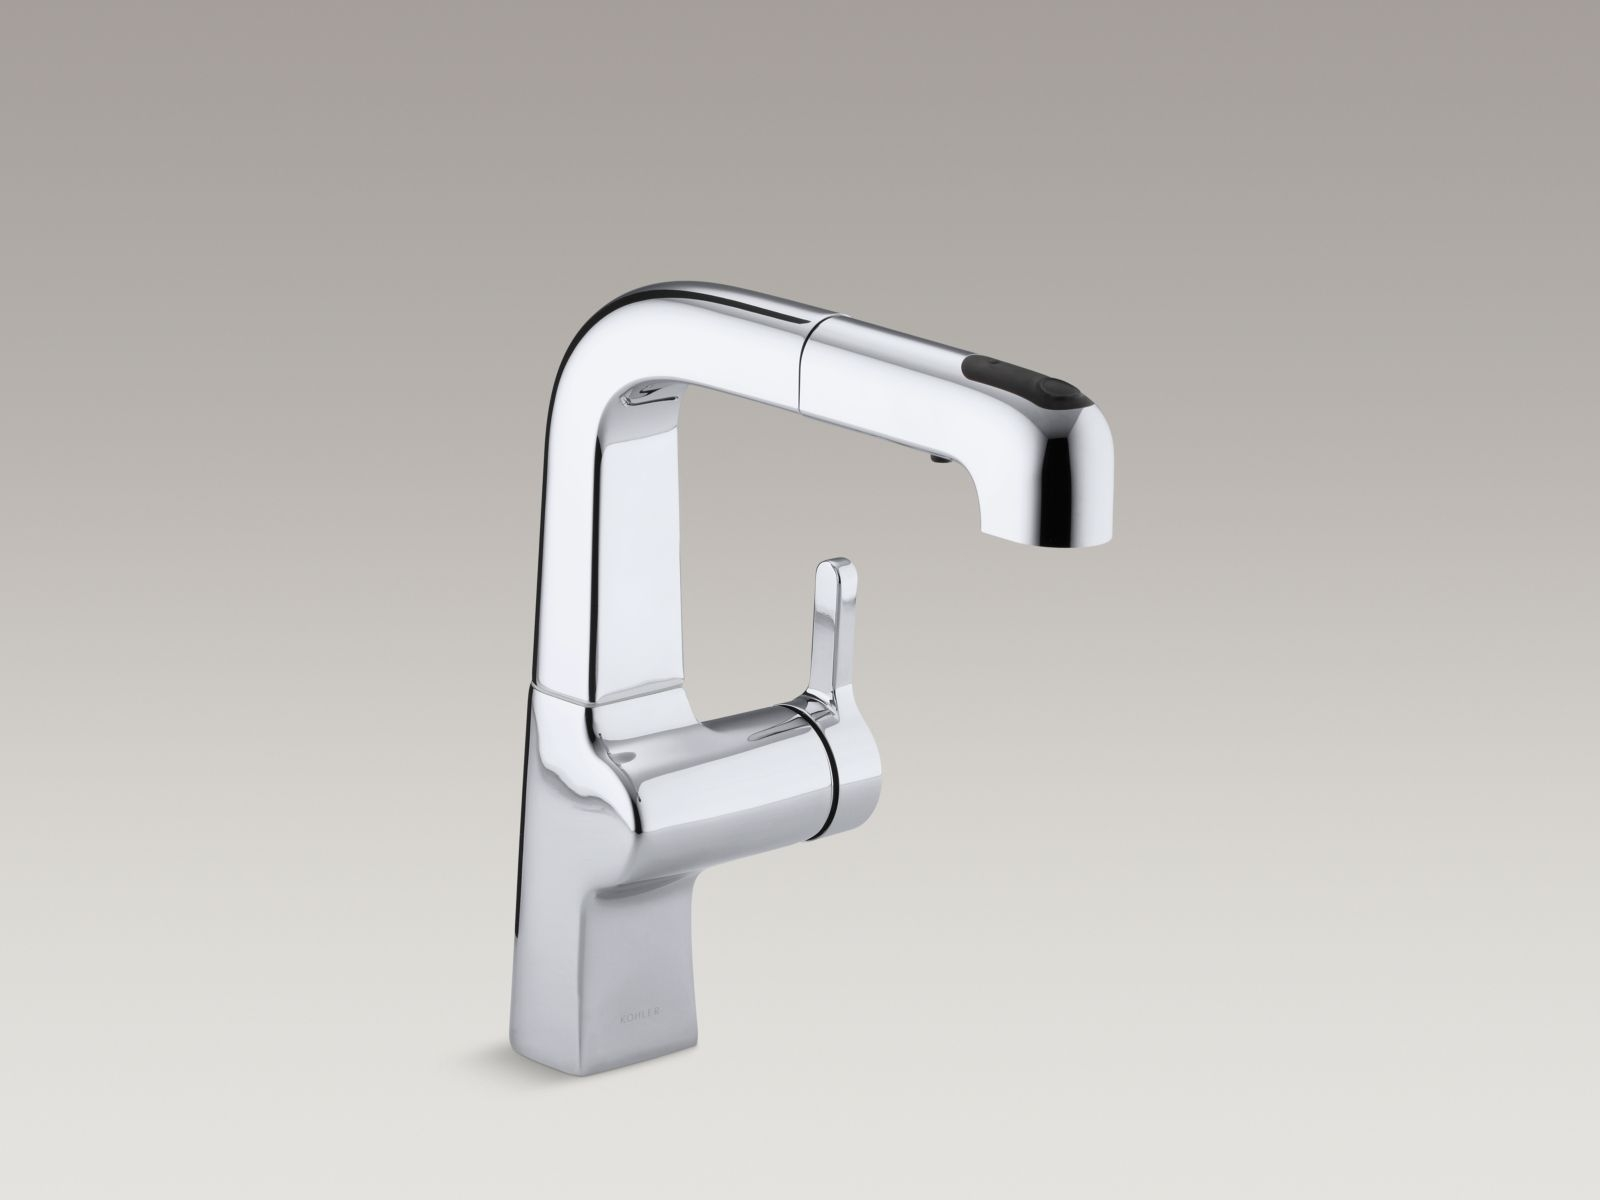 Ideas, kohler purist single hole kitchen faucet kohler purist single hole kitchen faucet buyplumbing category pull out spout 1600 x 1200  .